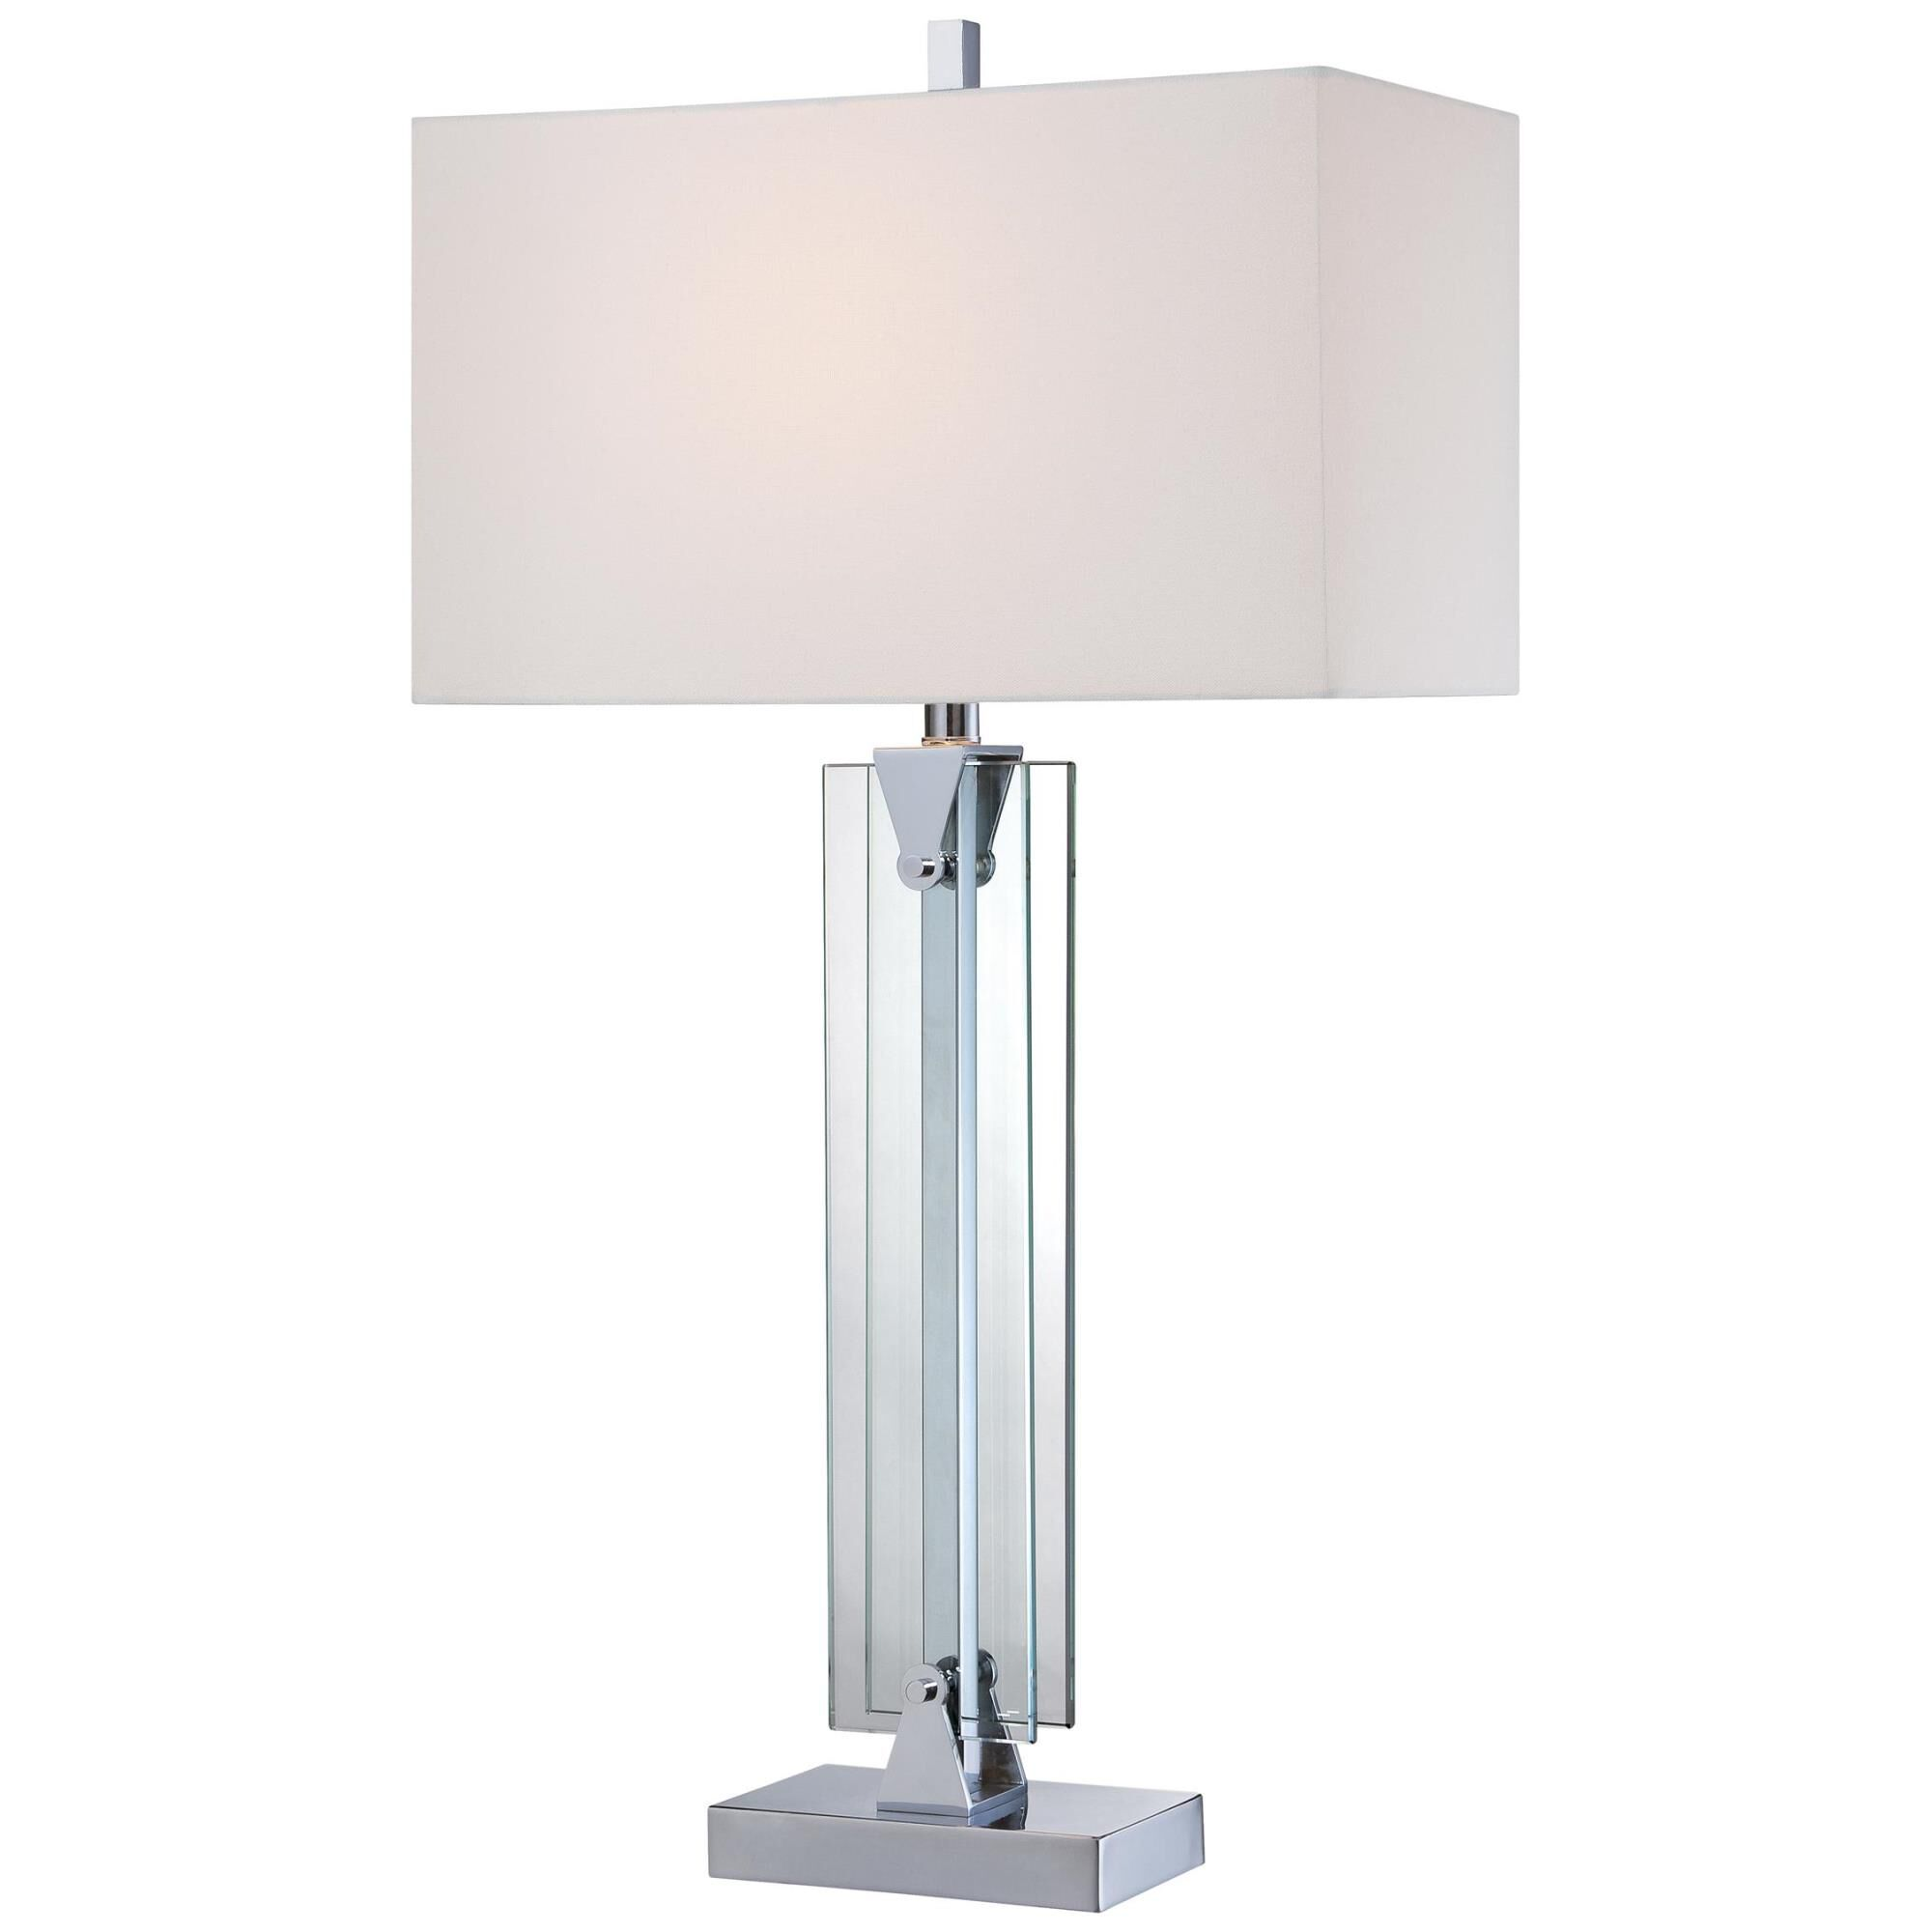 Kovacs 31 Inch Table Lamp - P1608-077 - Transitional